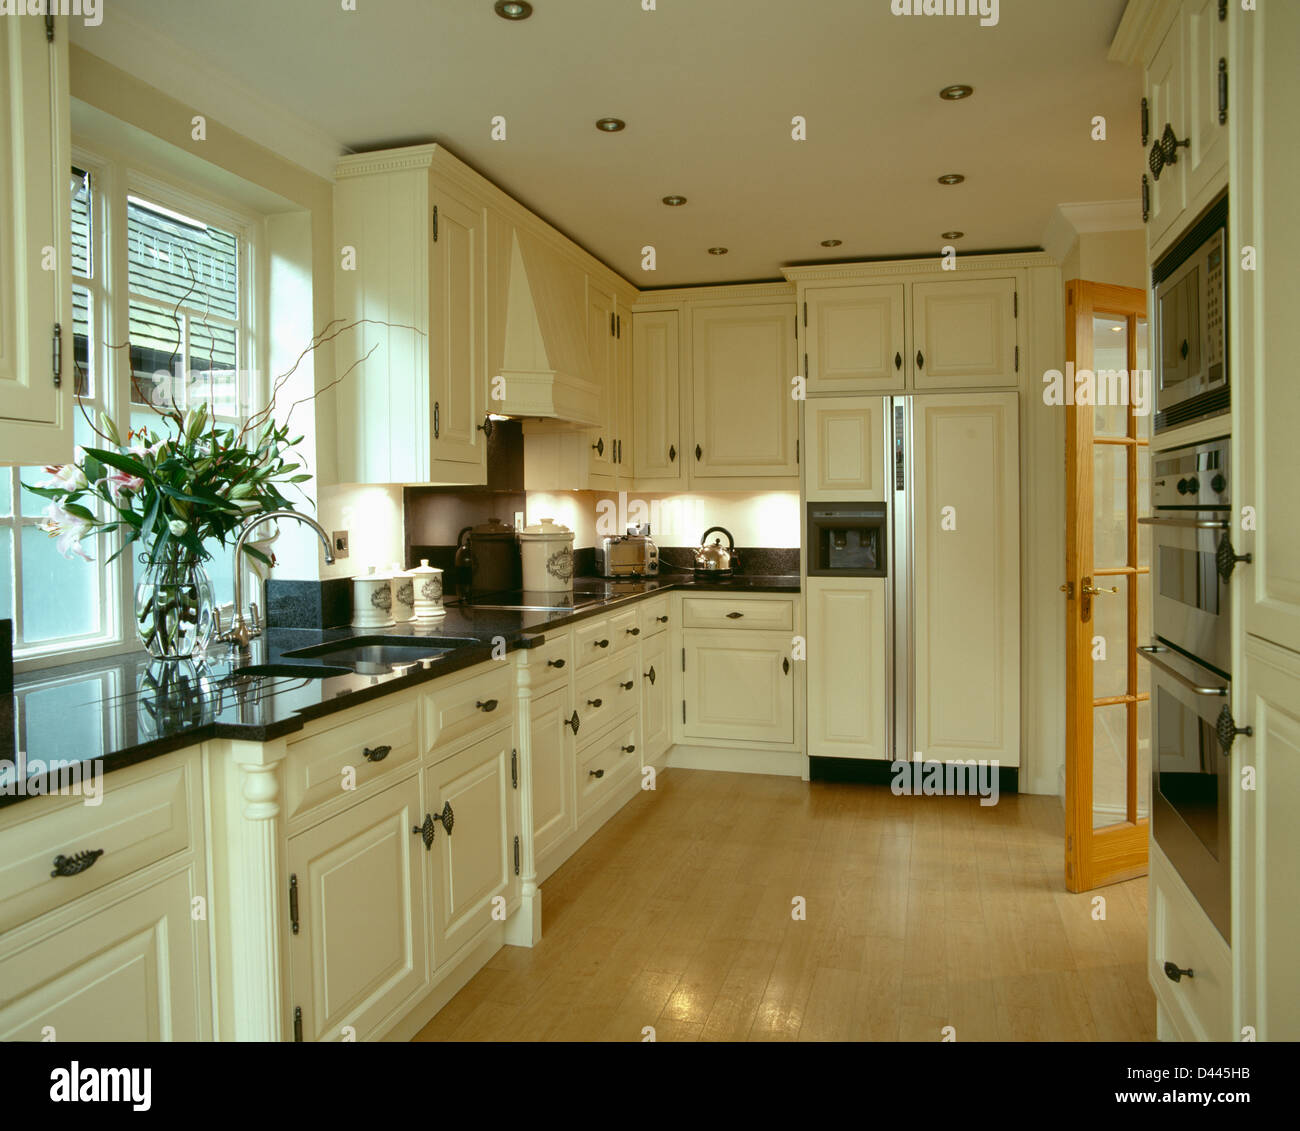 Cream Units With Black Granite Worktops In Kitchen With